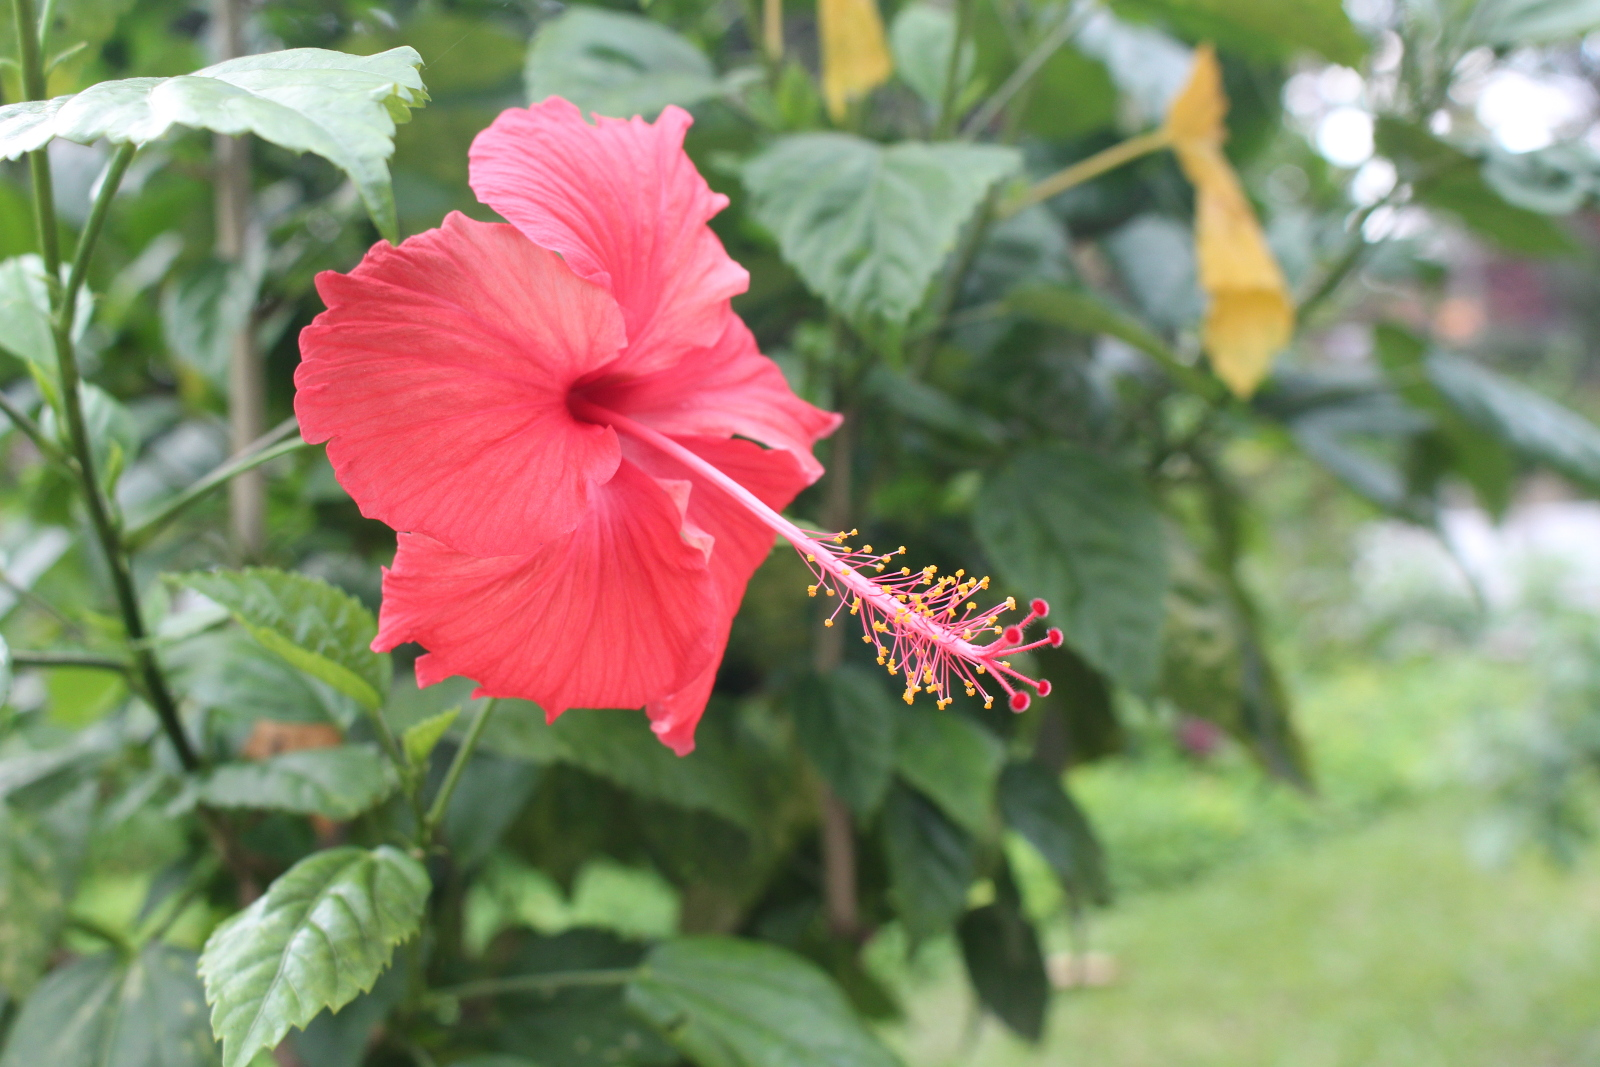 Kl hibiscus and orchid garden land of exclusive tropical flowers the hibiscus is an astonishingly beautiful plant nicknamed as the king of tropical flowers izmirmasajfo